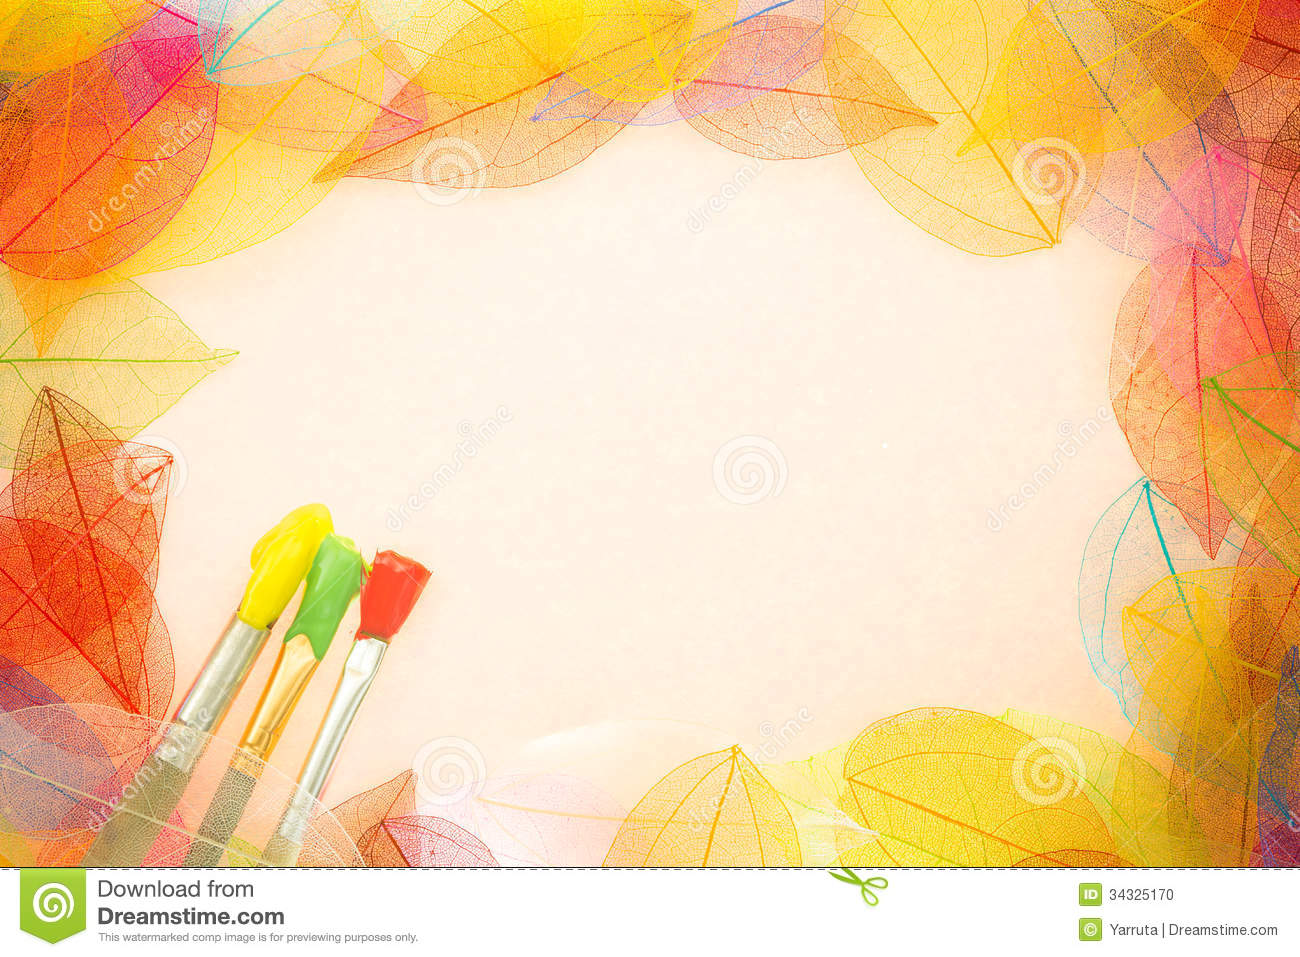 Fall Leaves Wallpaper Border Autumn Art Background Stock Photo Image 34325170